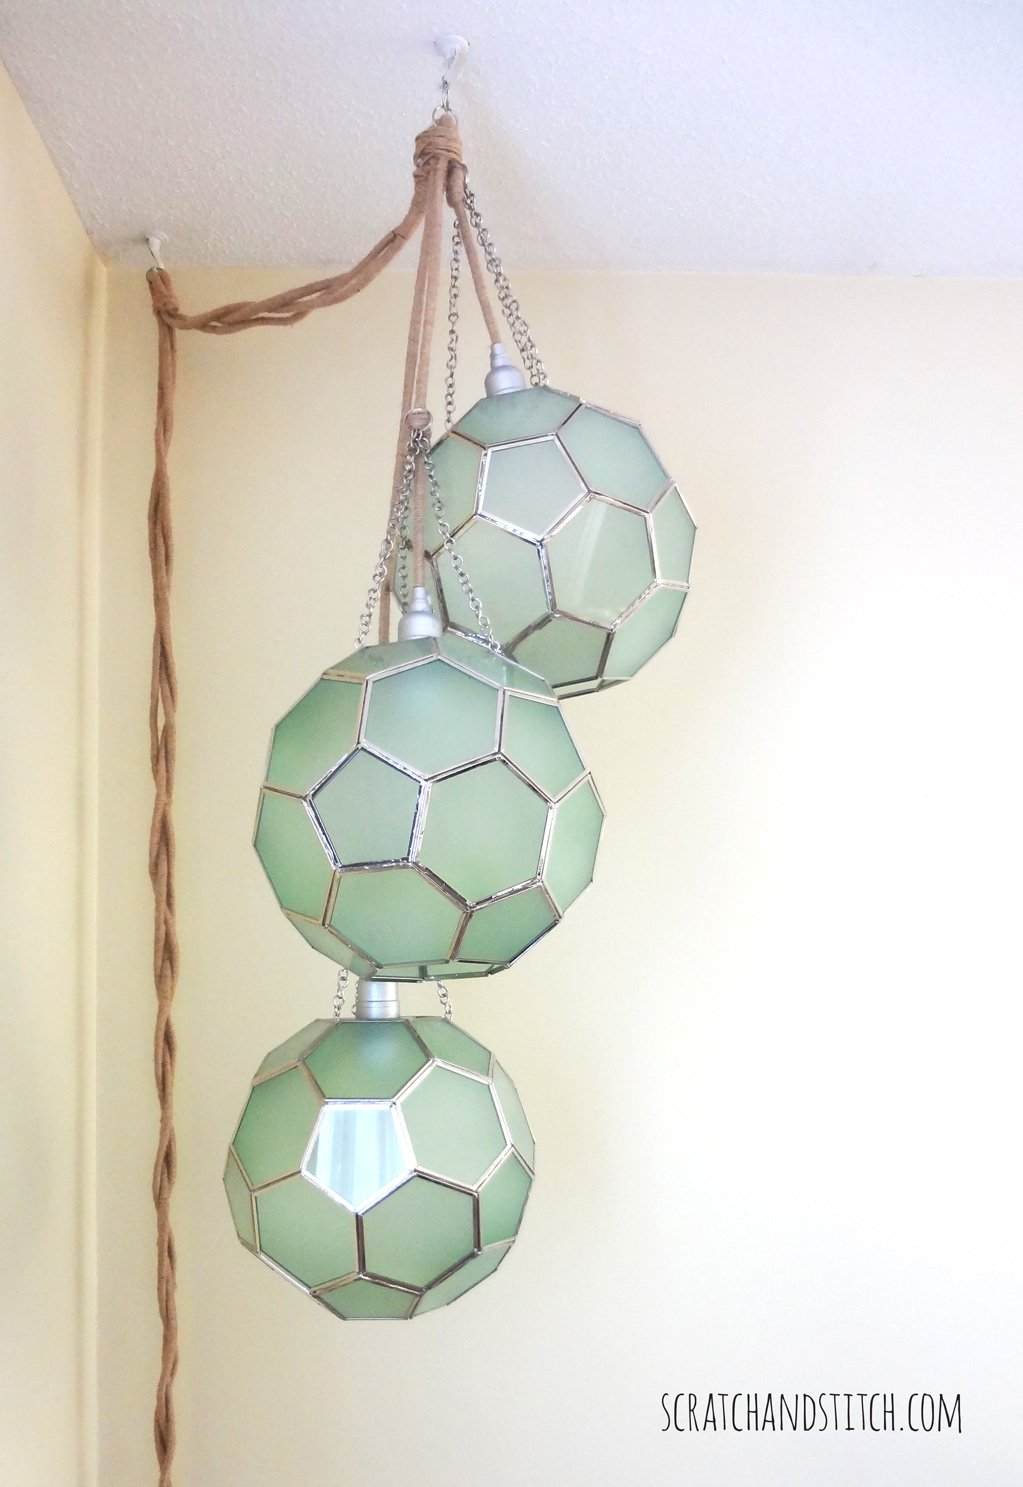 Honeycomb Pendant Light - scratchandstitch.com